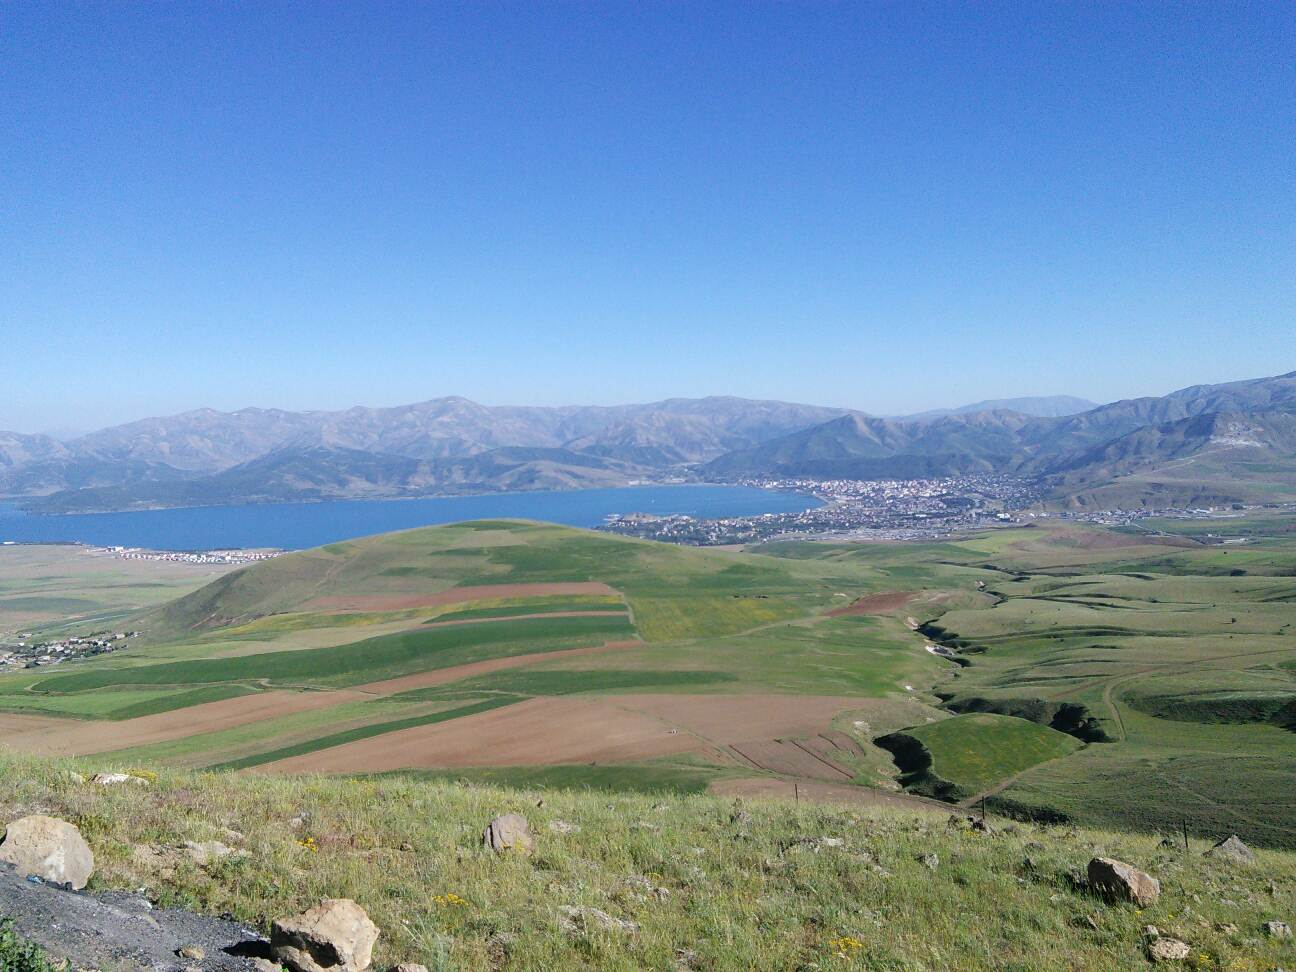 Tatvan and Lake Van